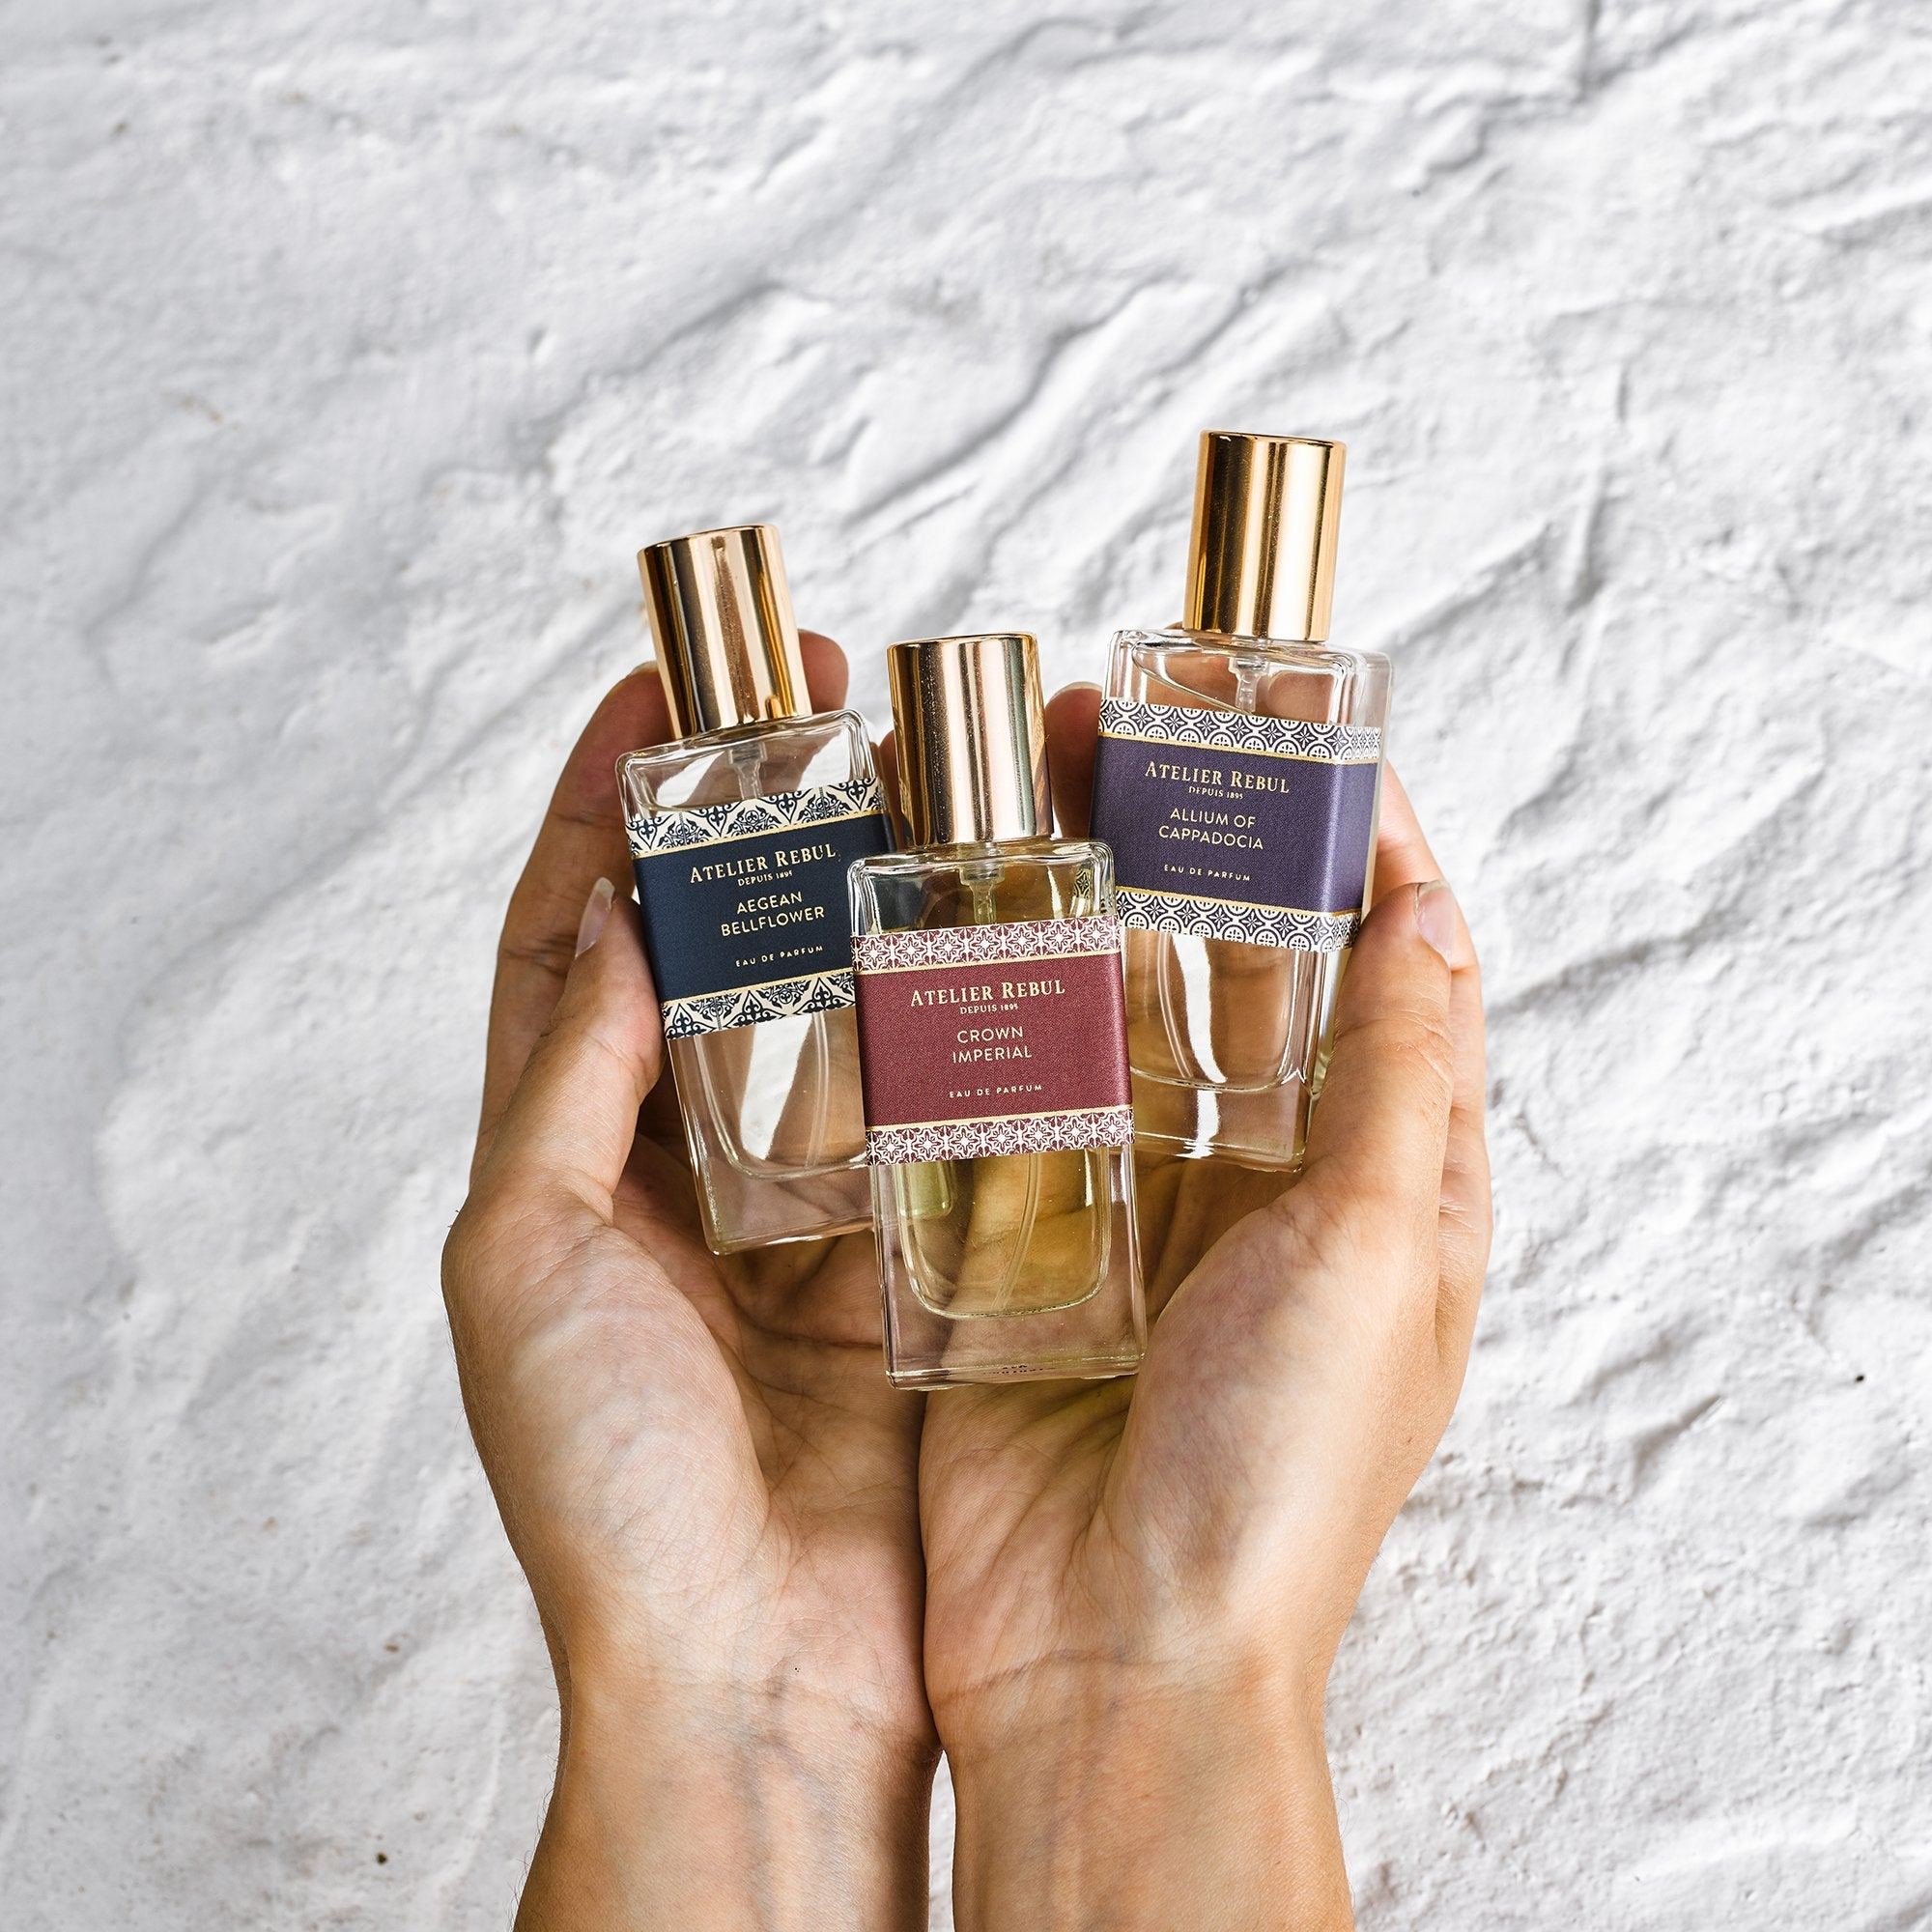 Endemic Flowers Eau de Parfum Trio Set